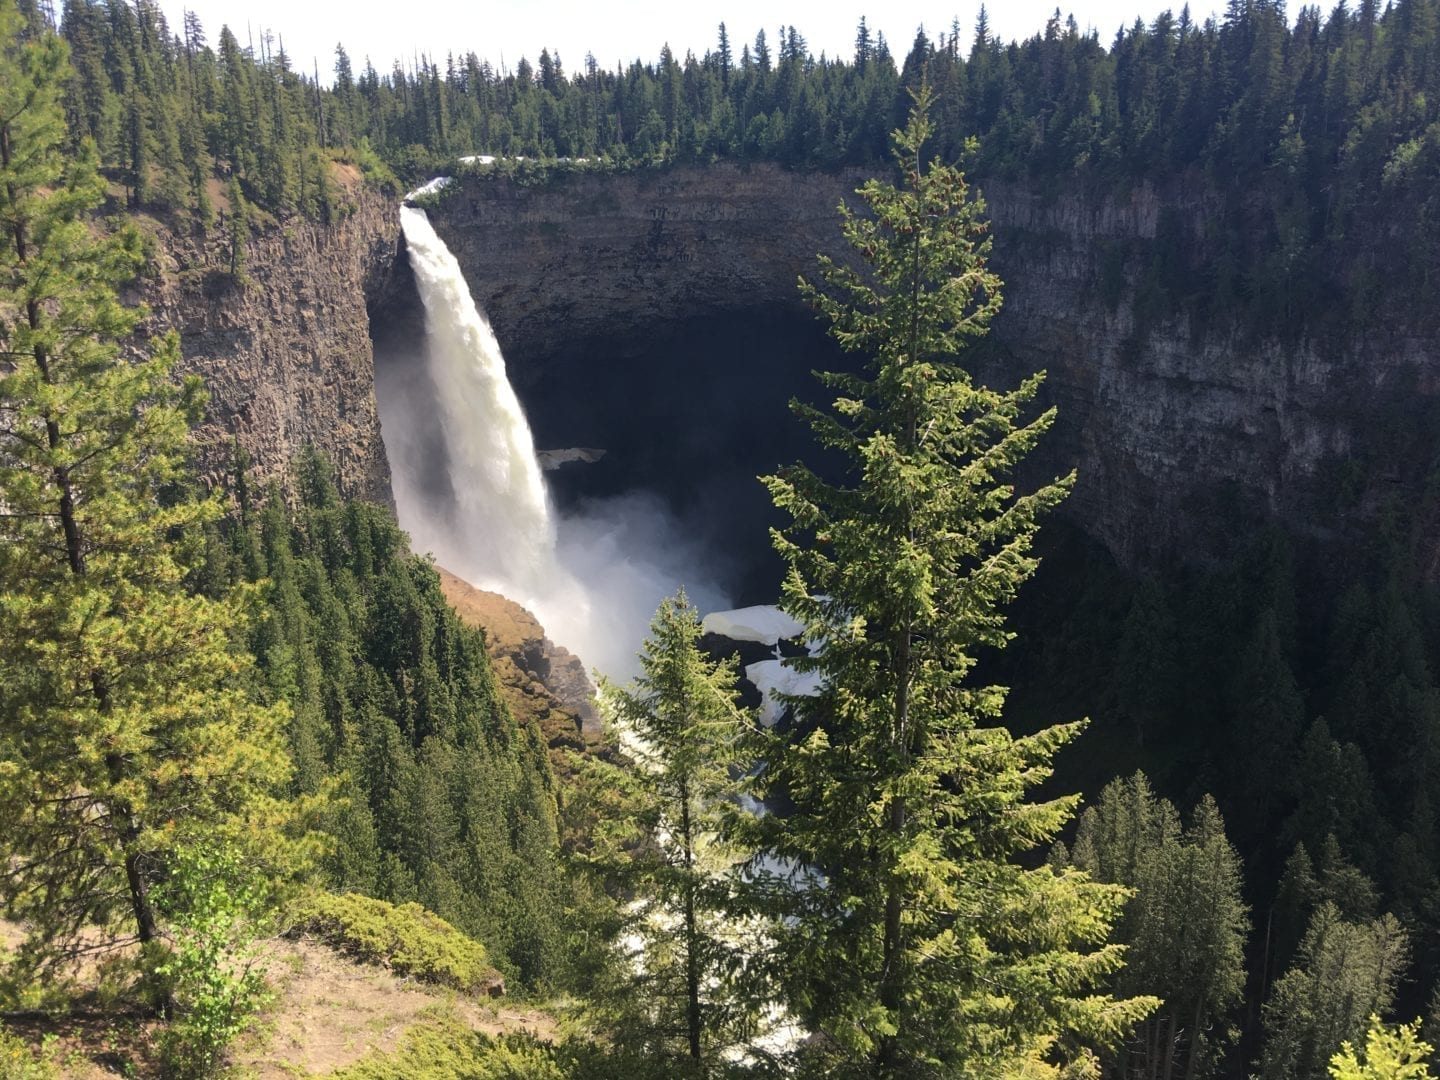 Helmcken Falls in Wells Gray Park, British Columbia